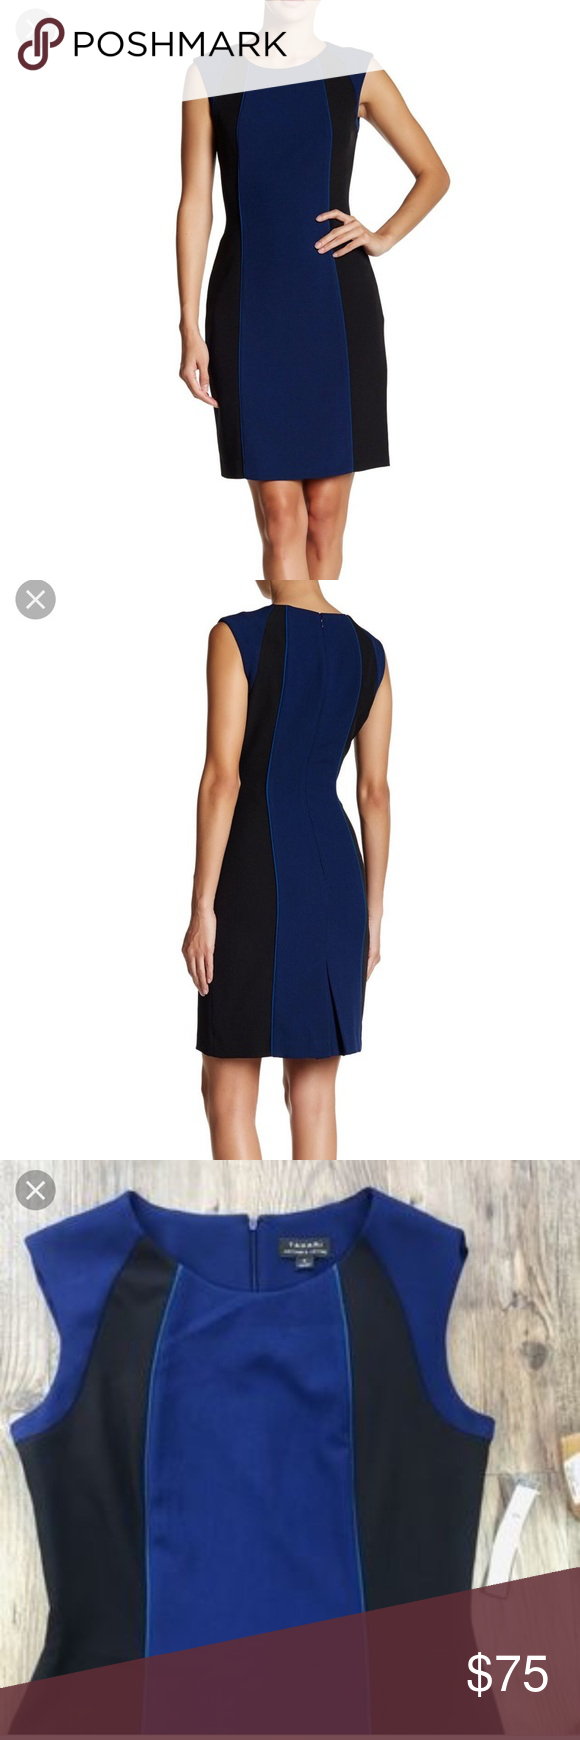 d79269e6 NWT Tahari Color-block Sheath dress Tahari Arthur S. Levine Color-block  sheath dress. Excellent for the professional woman. PRODUCT FEATURES Style  6229M621 ...